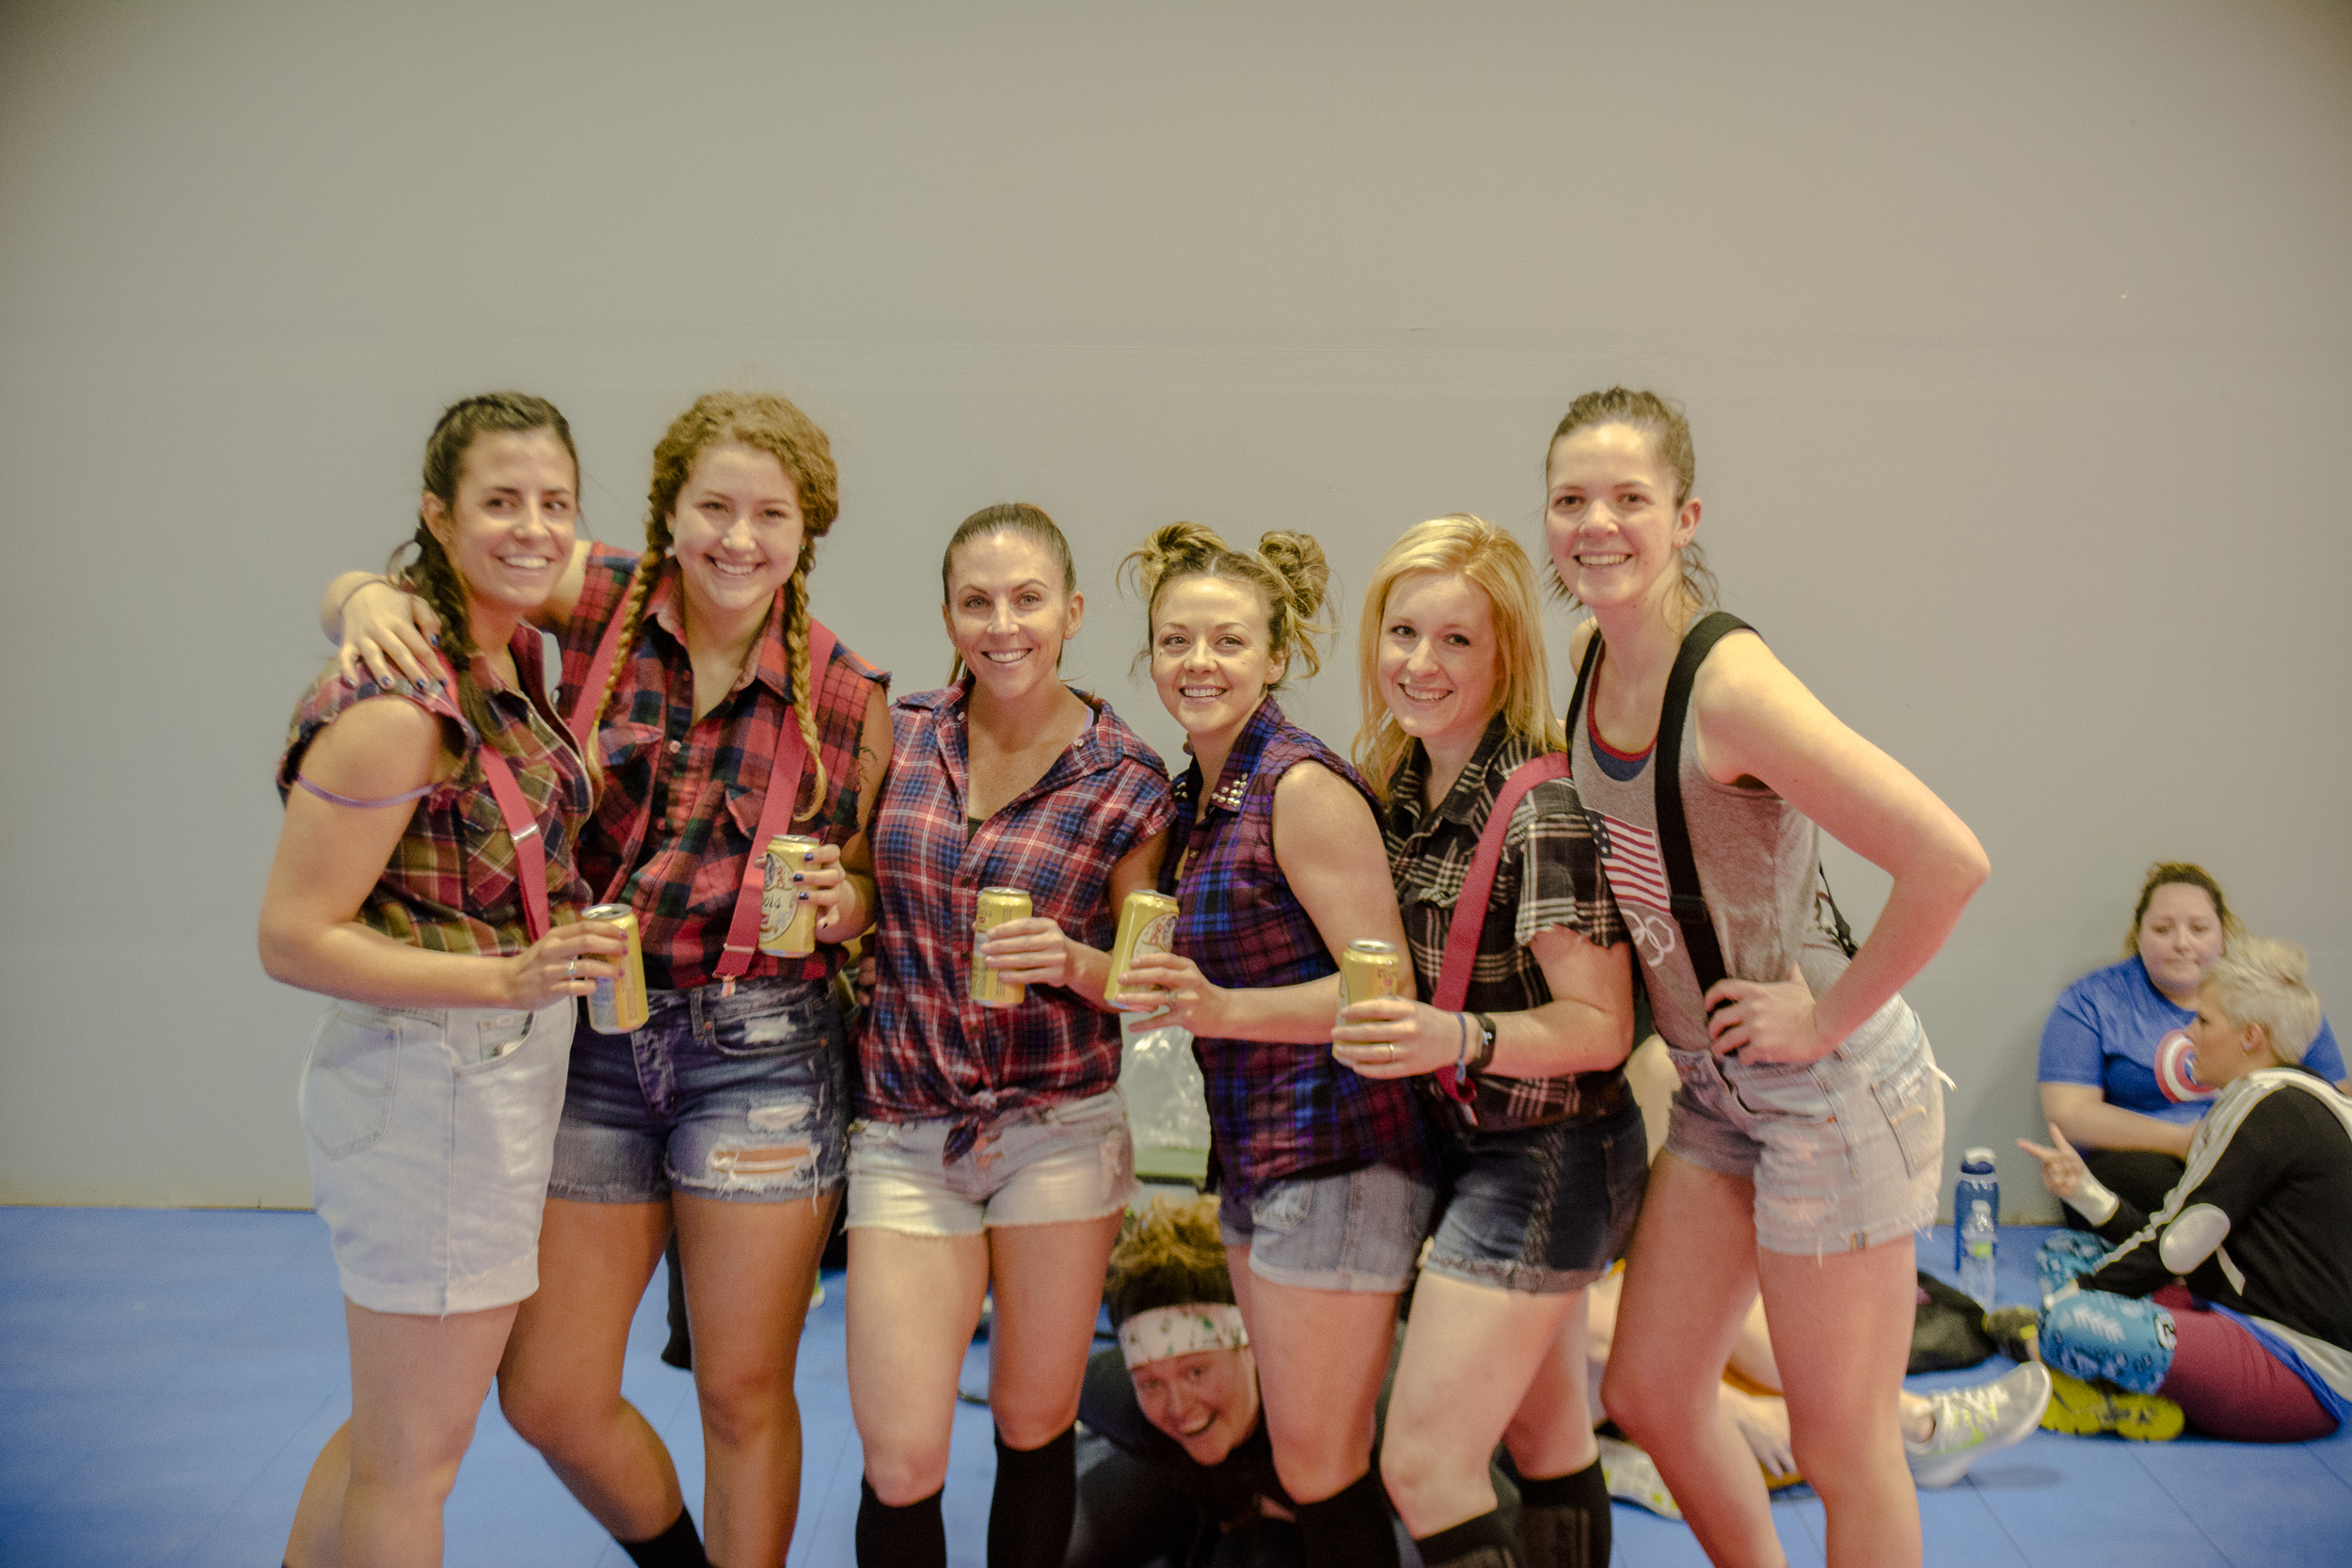 Dodge for a Cause 2017: Team Lumberjacks (Oh, hello there)